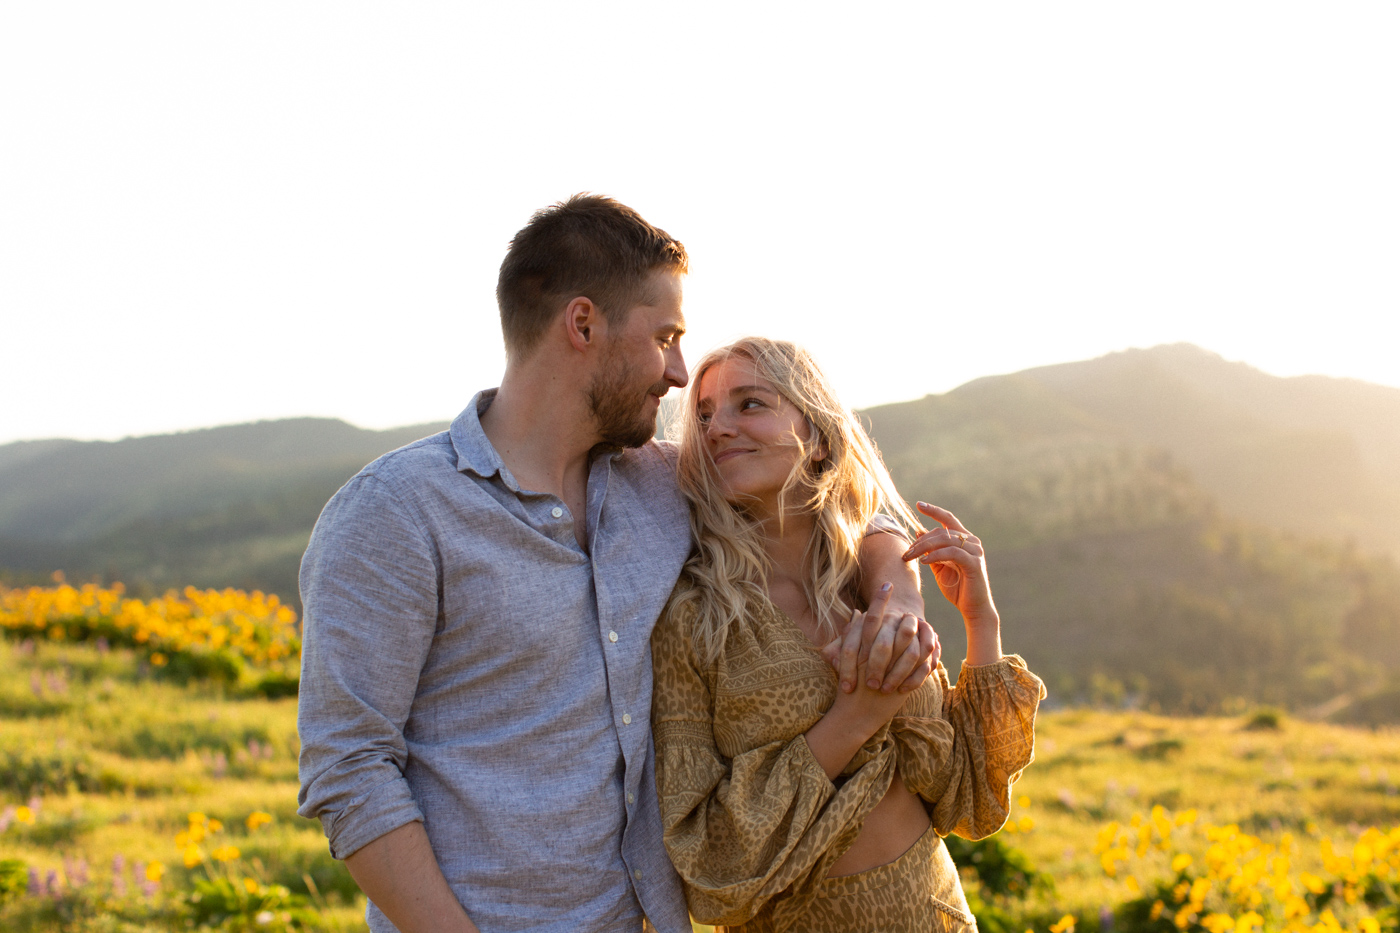 Emily+Daniel_Oregon_Engagement_Session-1-13.jpg